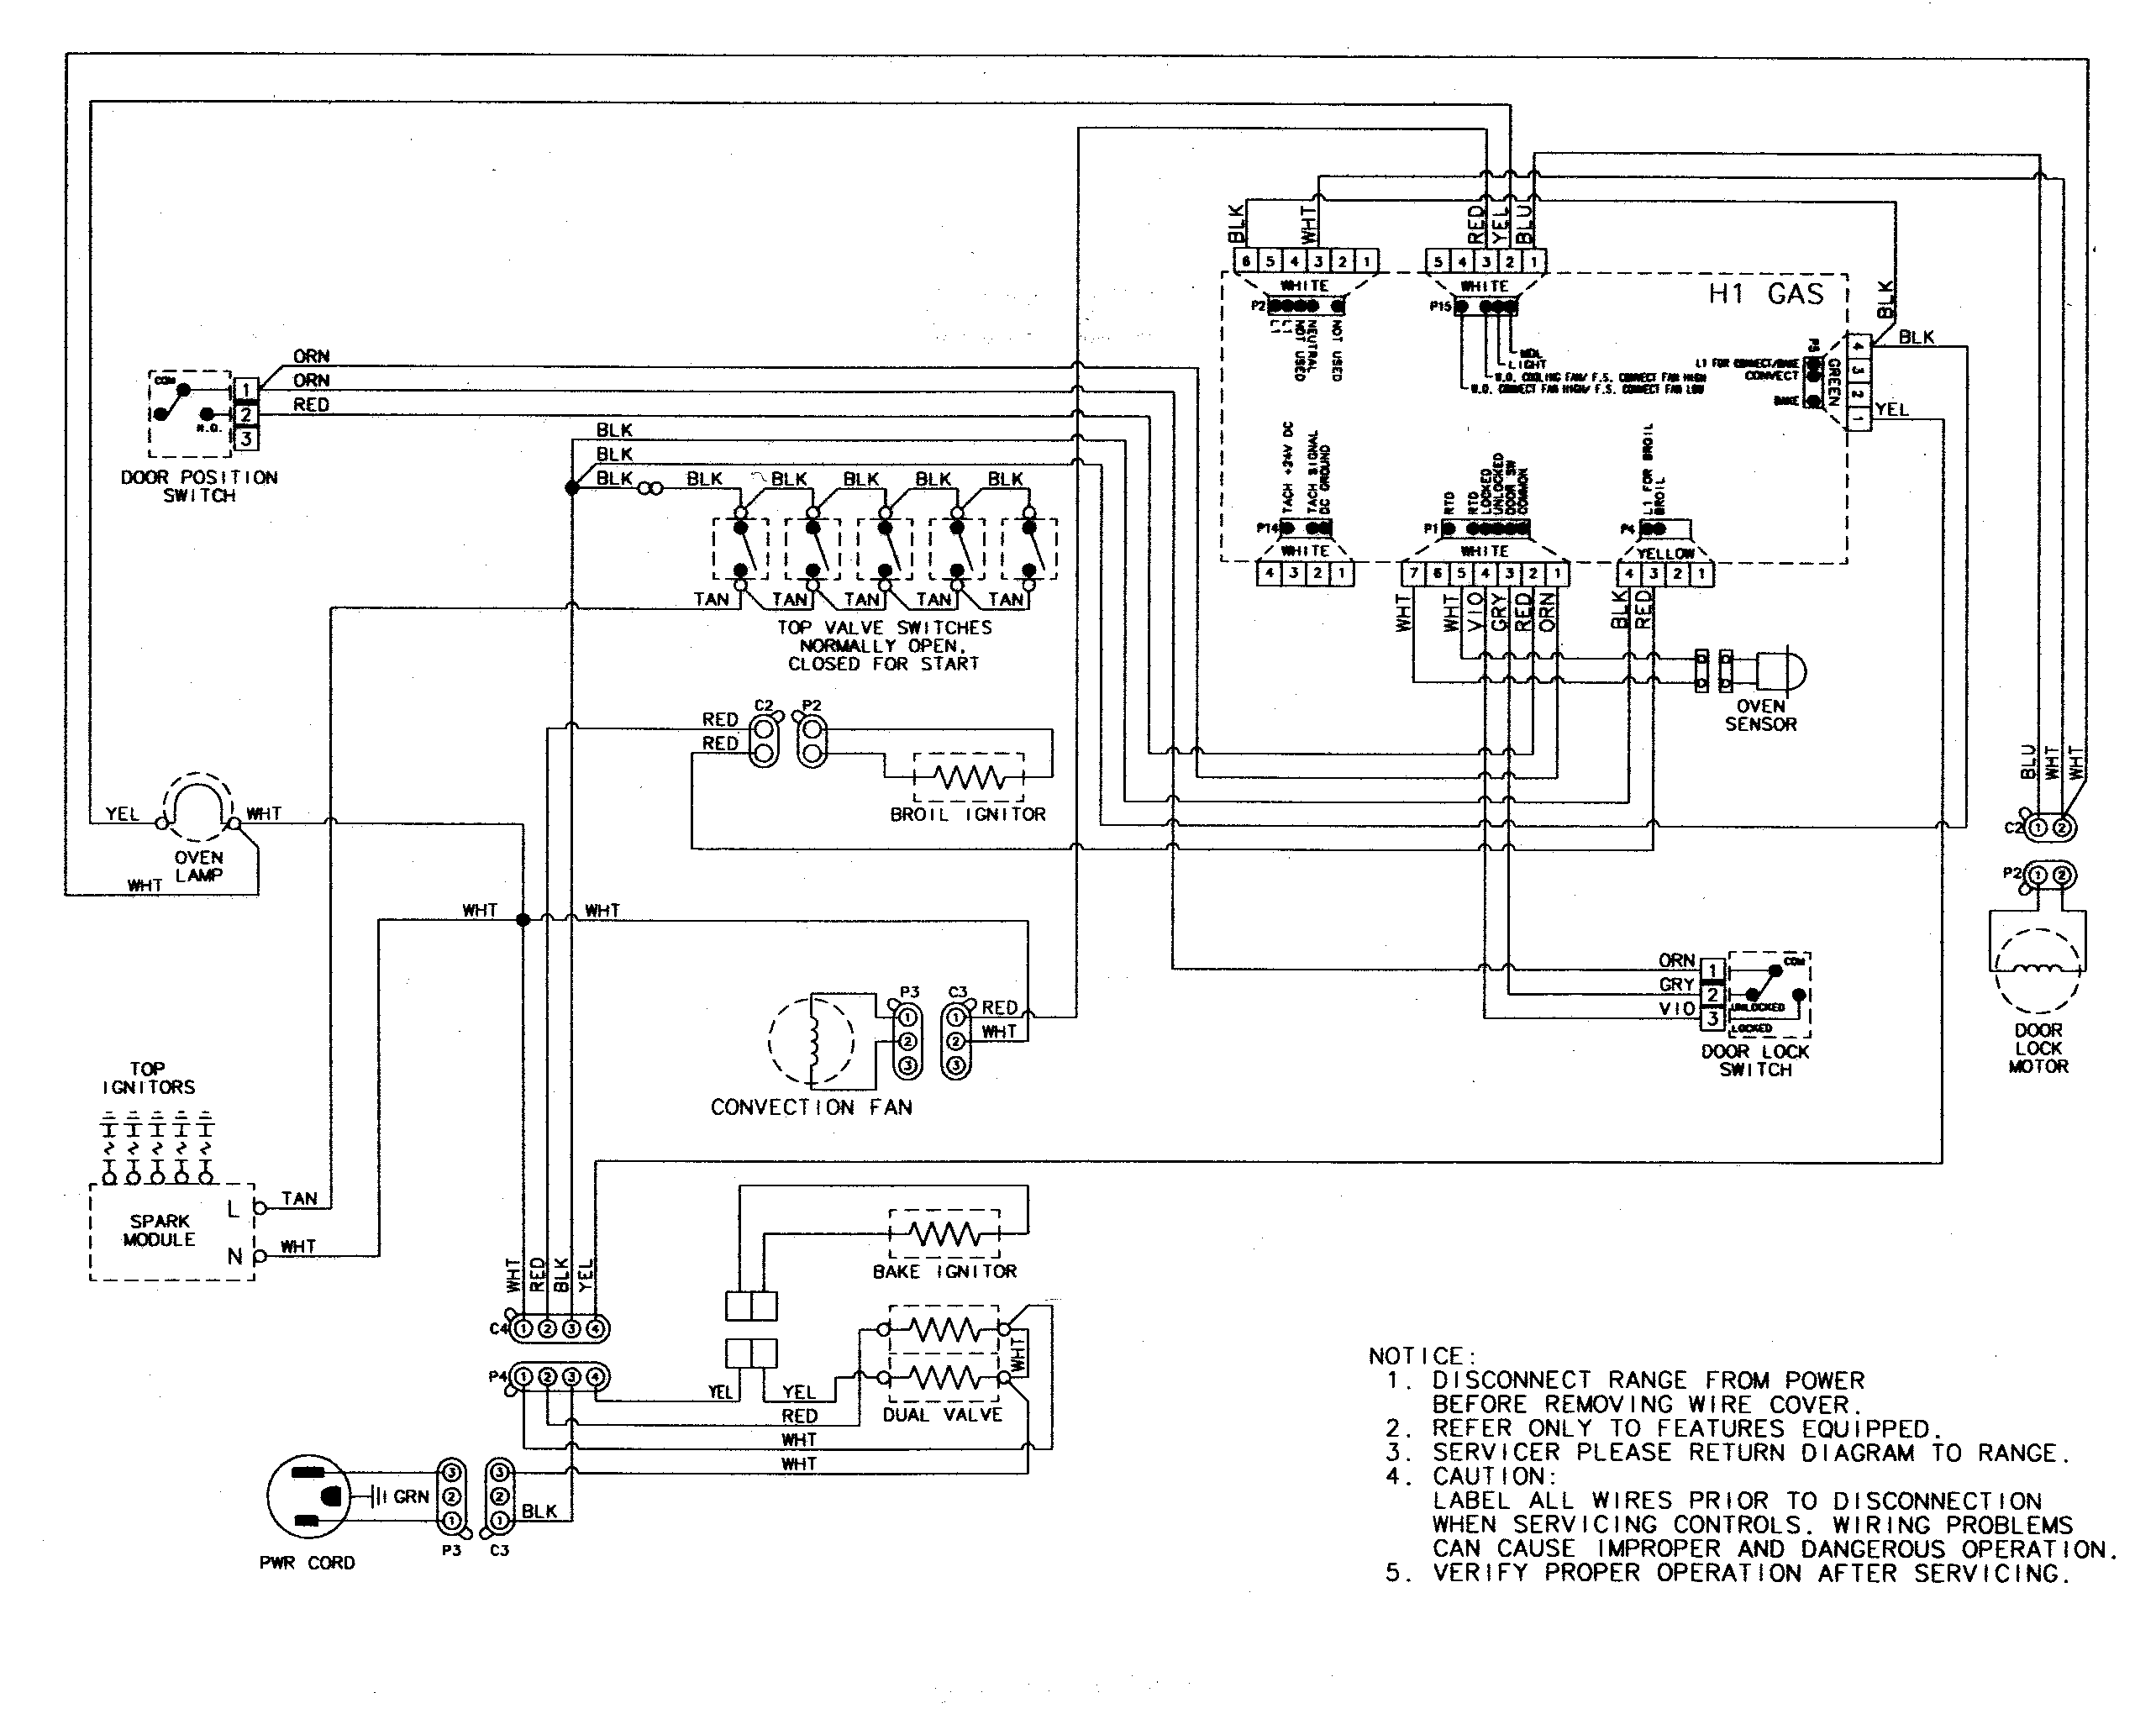 wiring information parts wiring diagram for whirlpool dryer the wiring diagram whirlpool electric oven wiring diagram at readyjetset.co